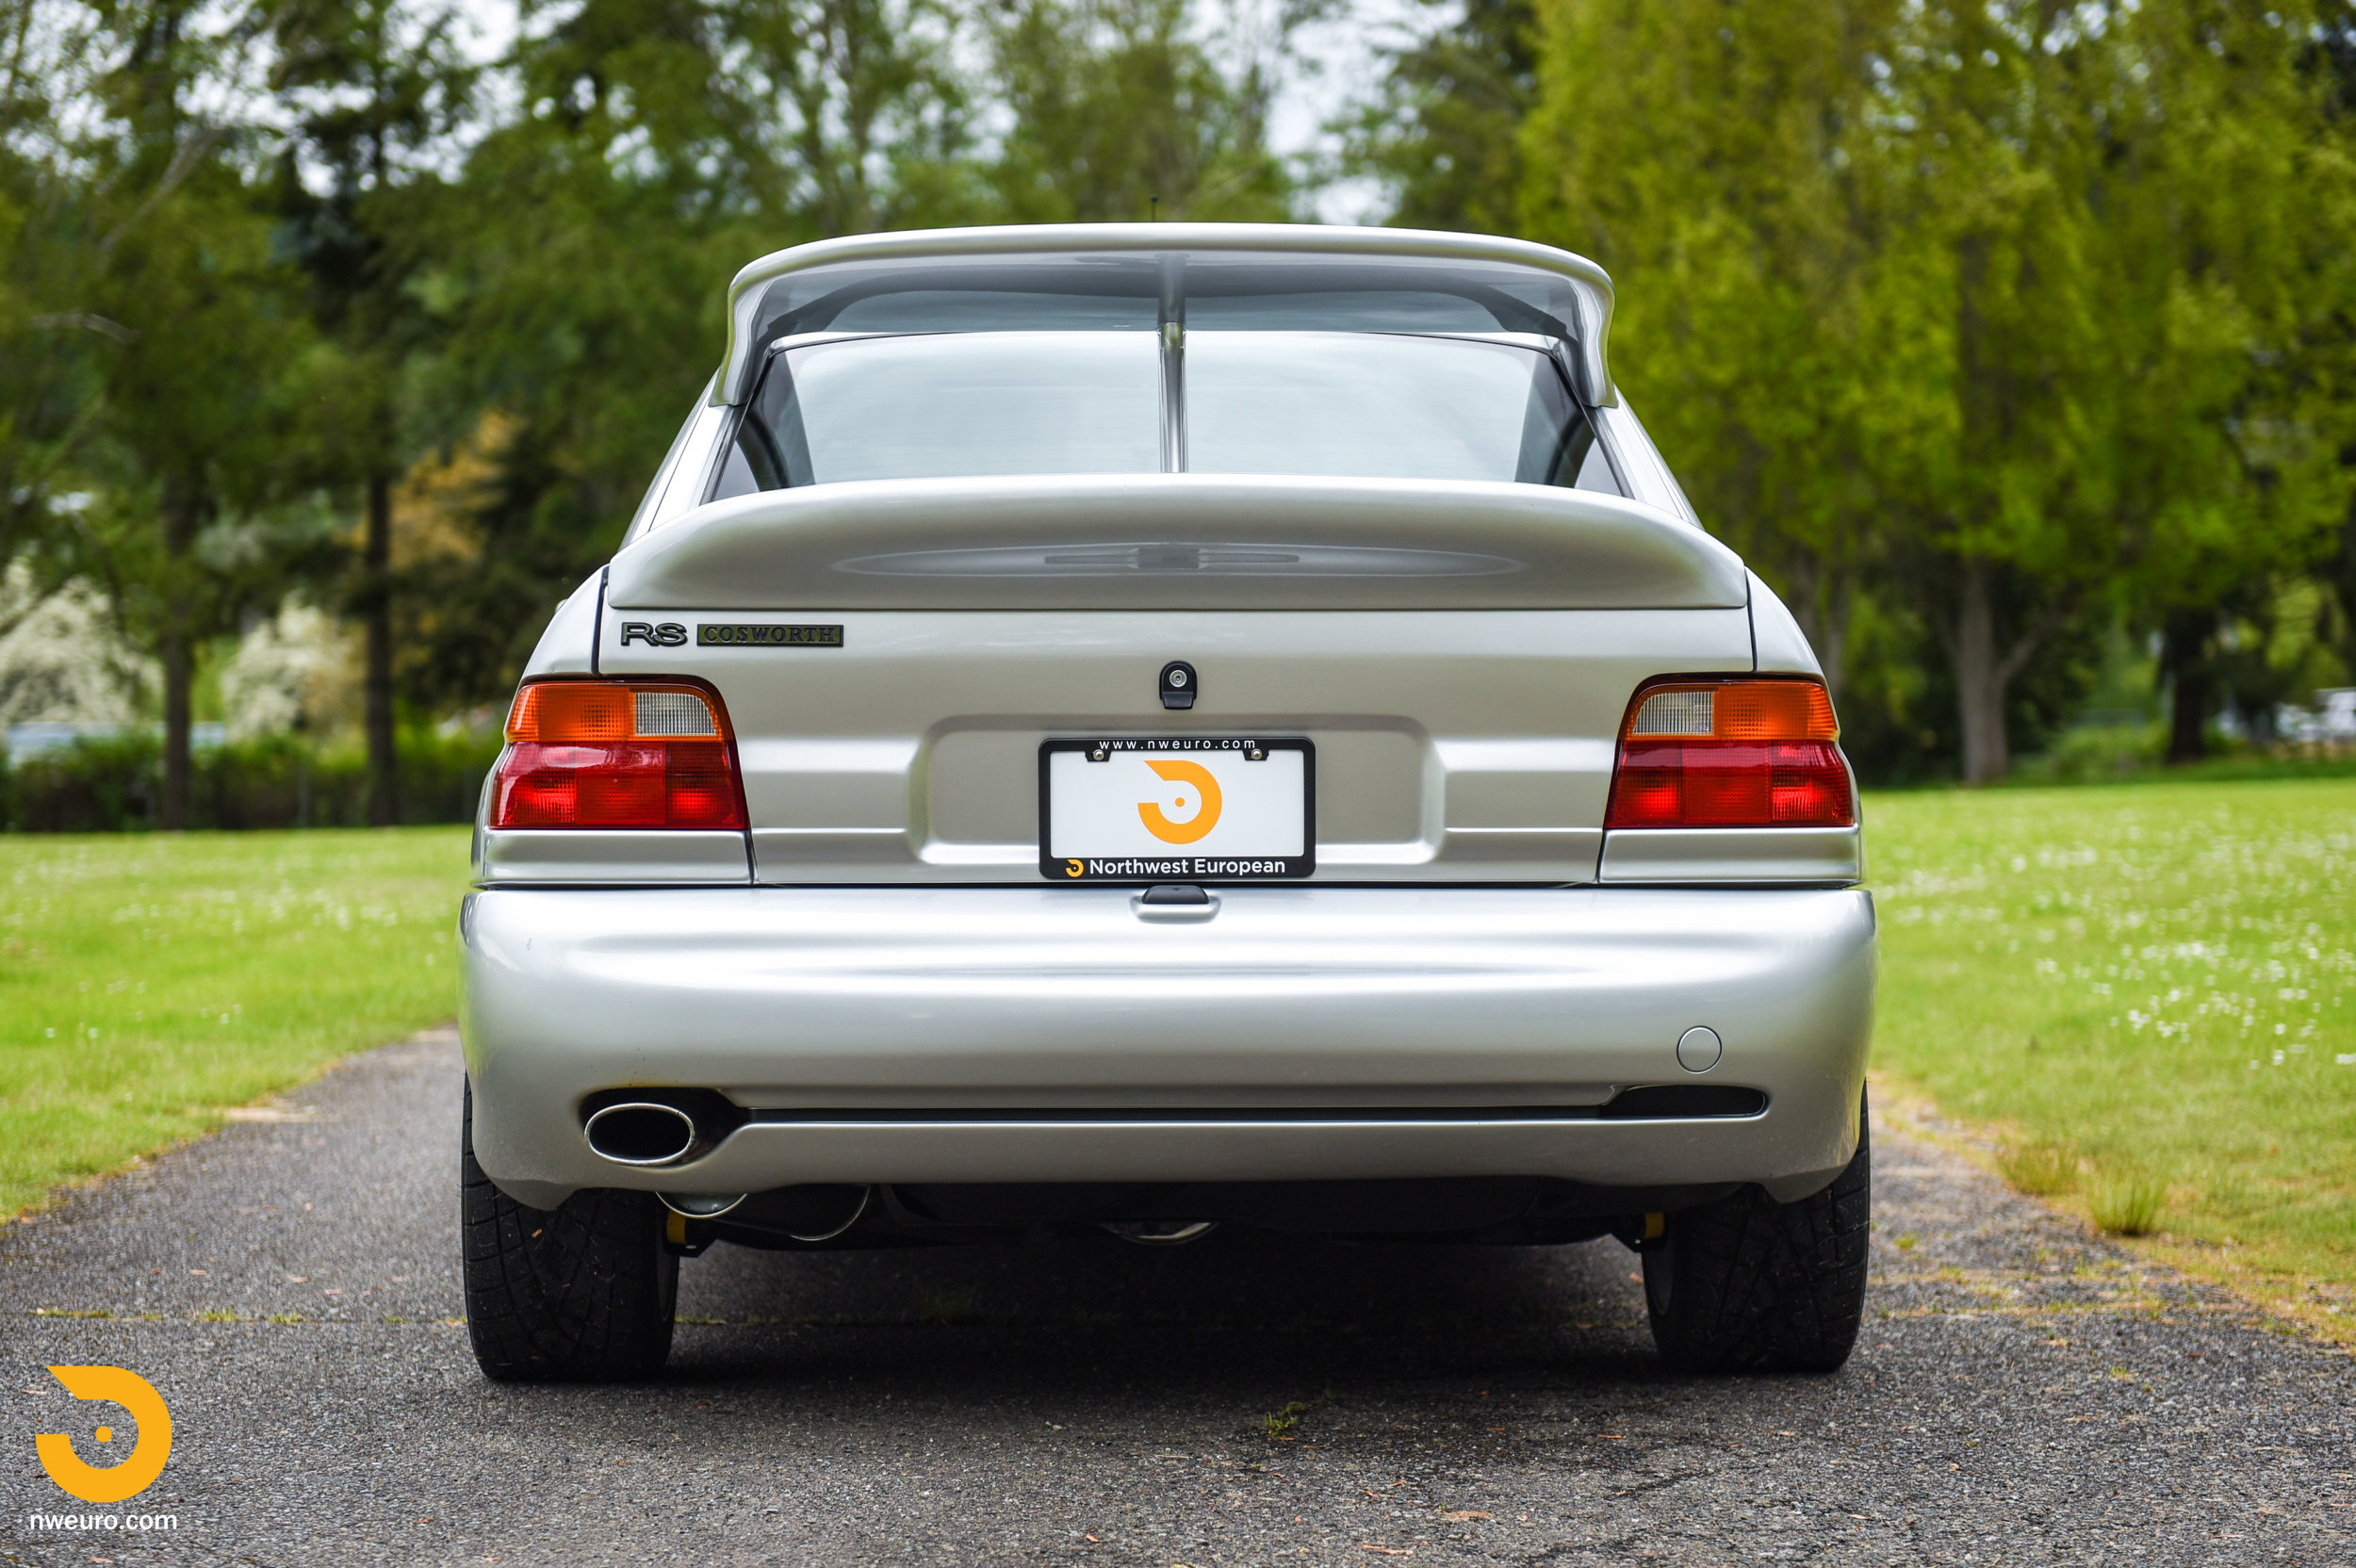 1995 Ford Escort Cosworth RS Silver-20.jpg